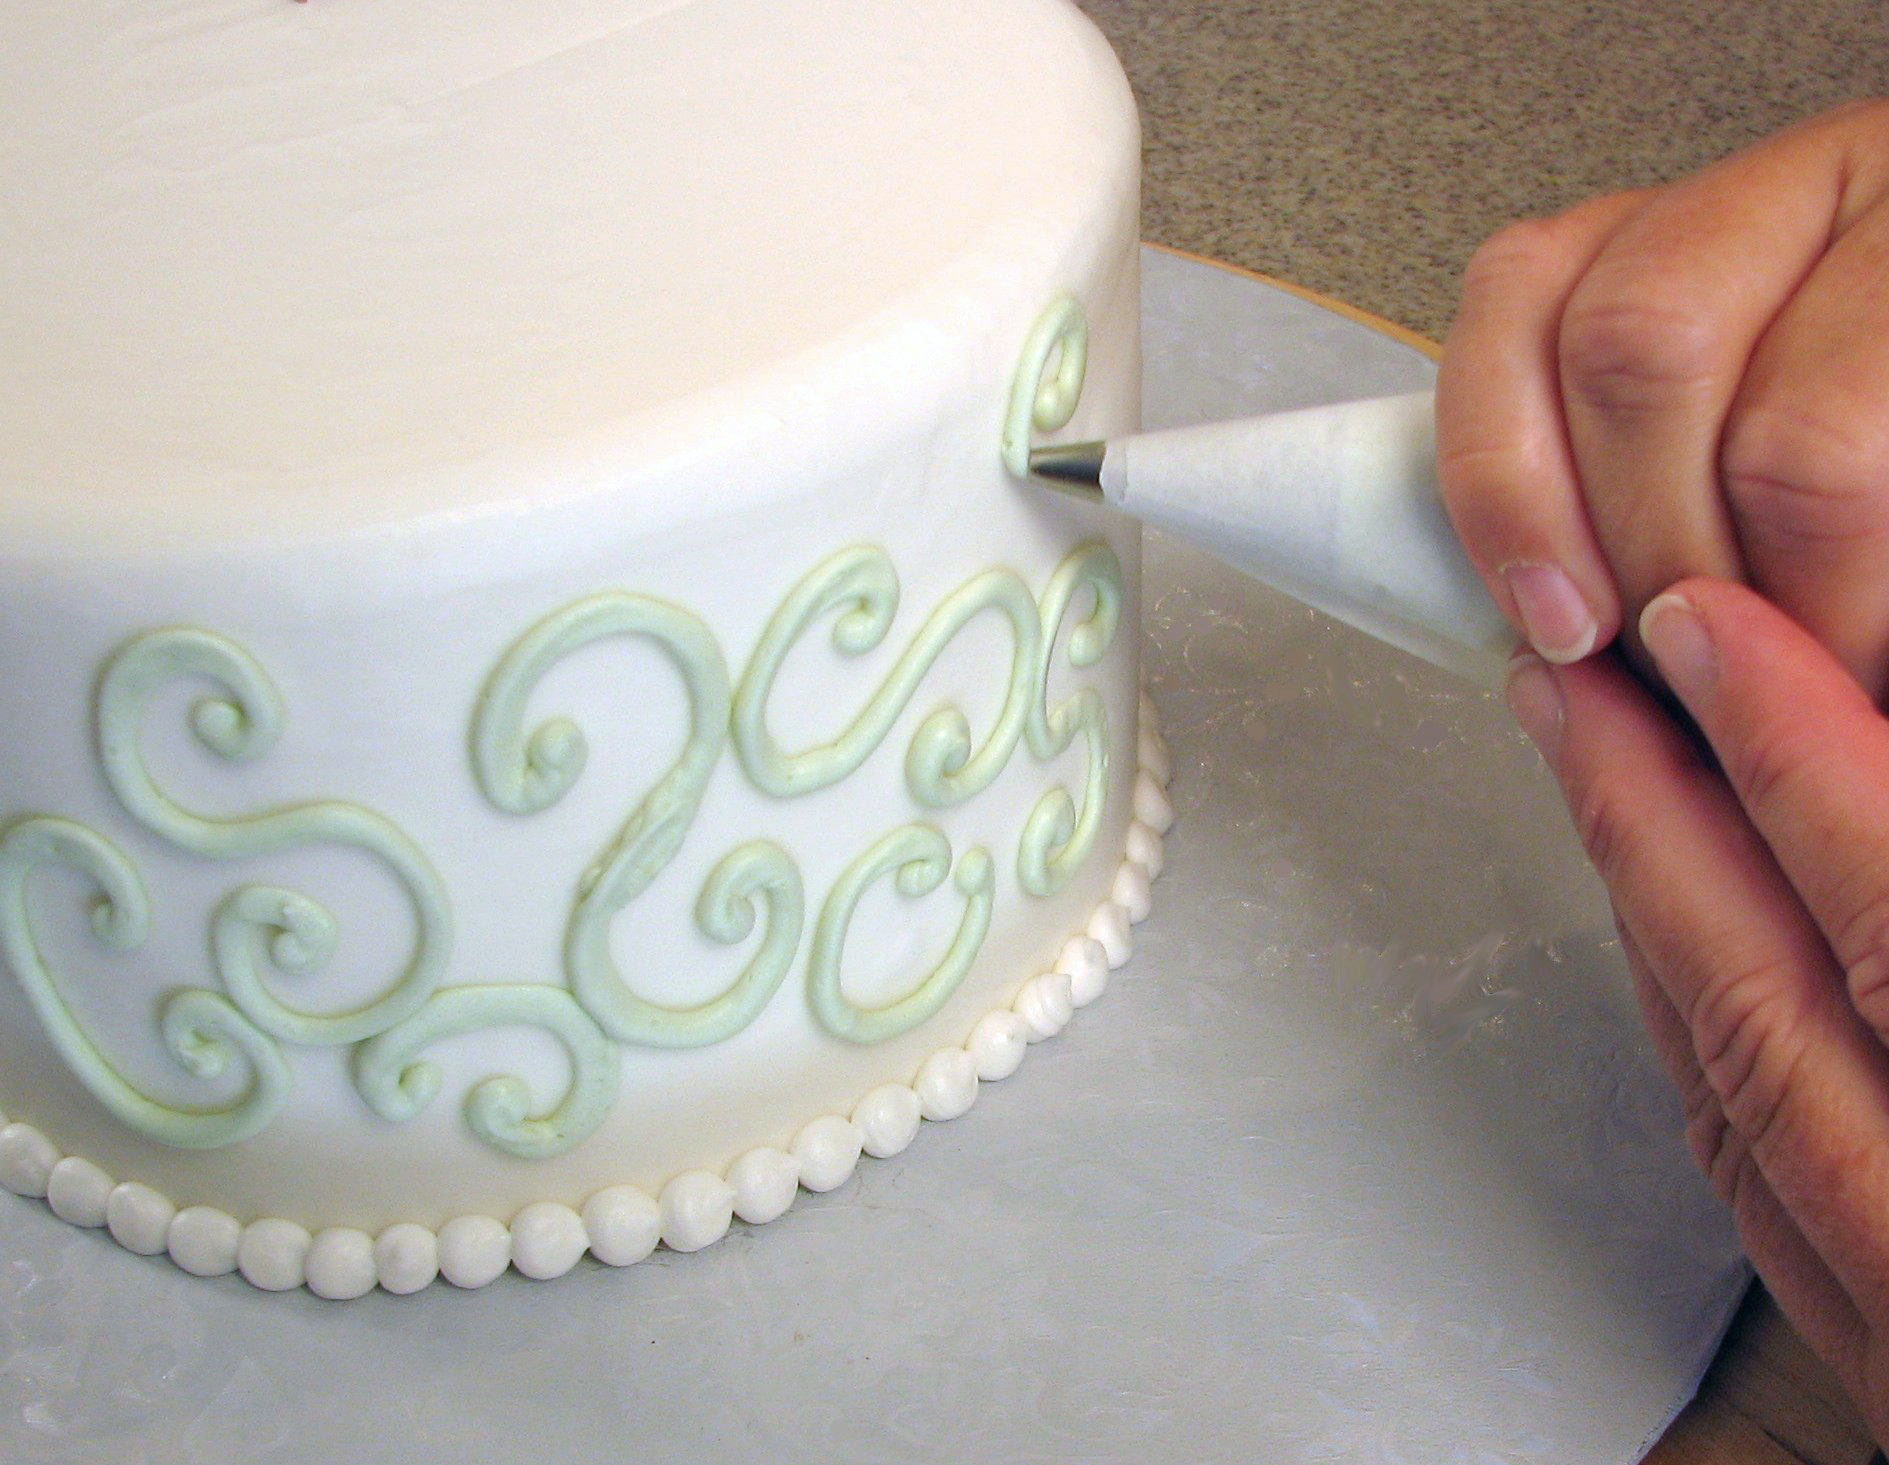 Cake Design And Decoration : Cake decorating - Wikipedia